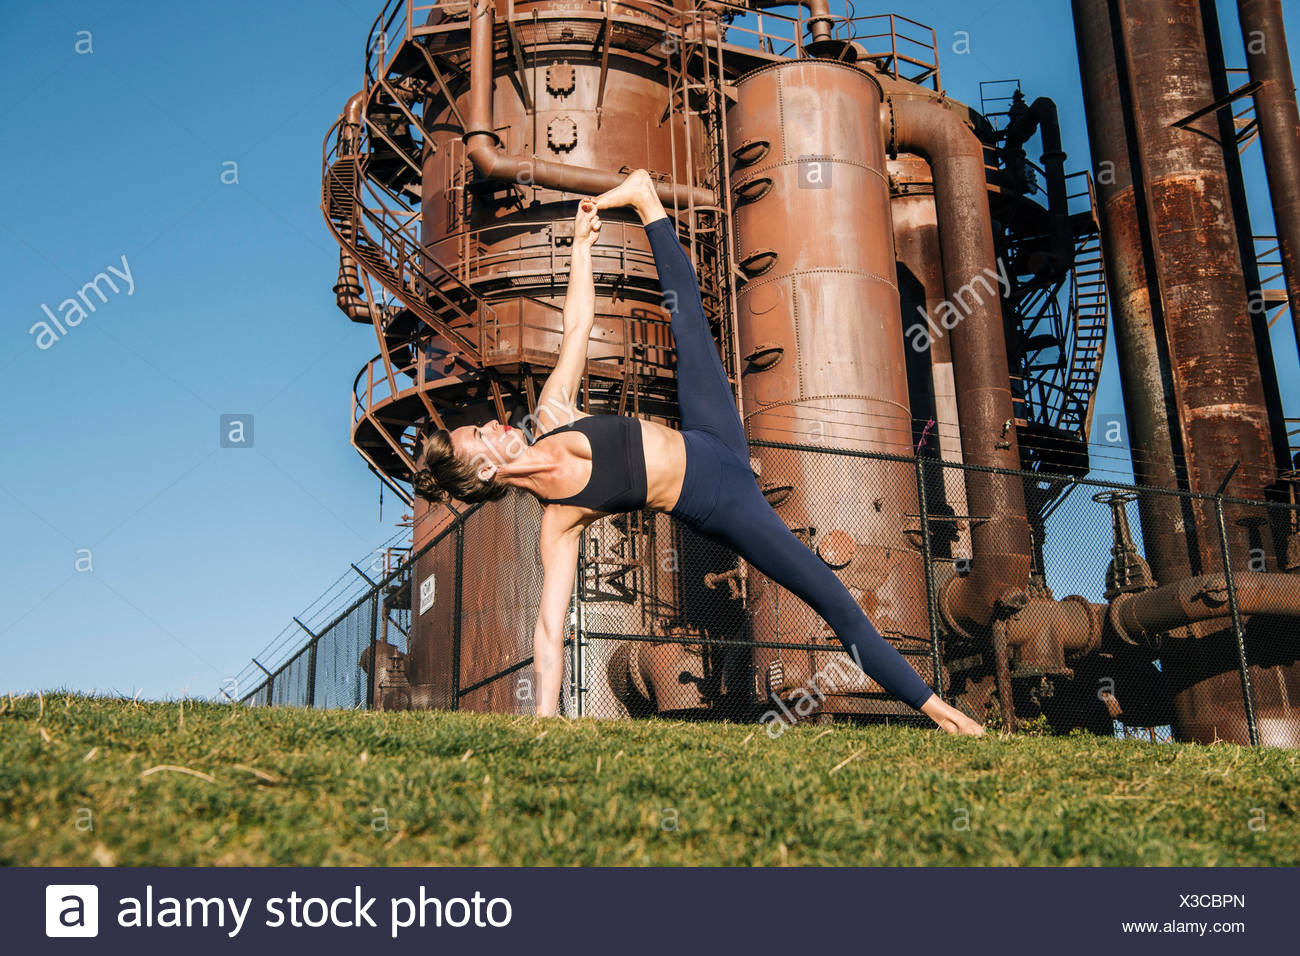 Young woman, near industrial works, in yoga position - Stock Image